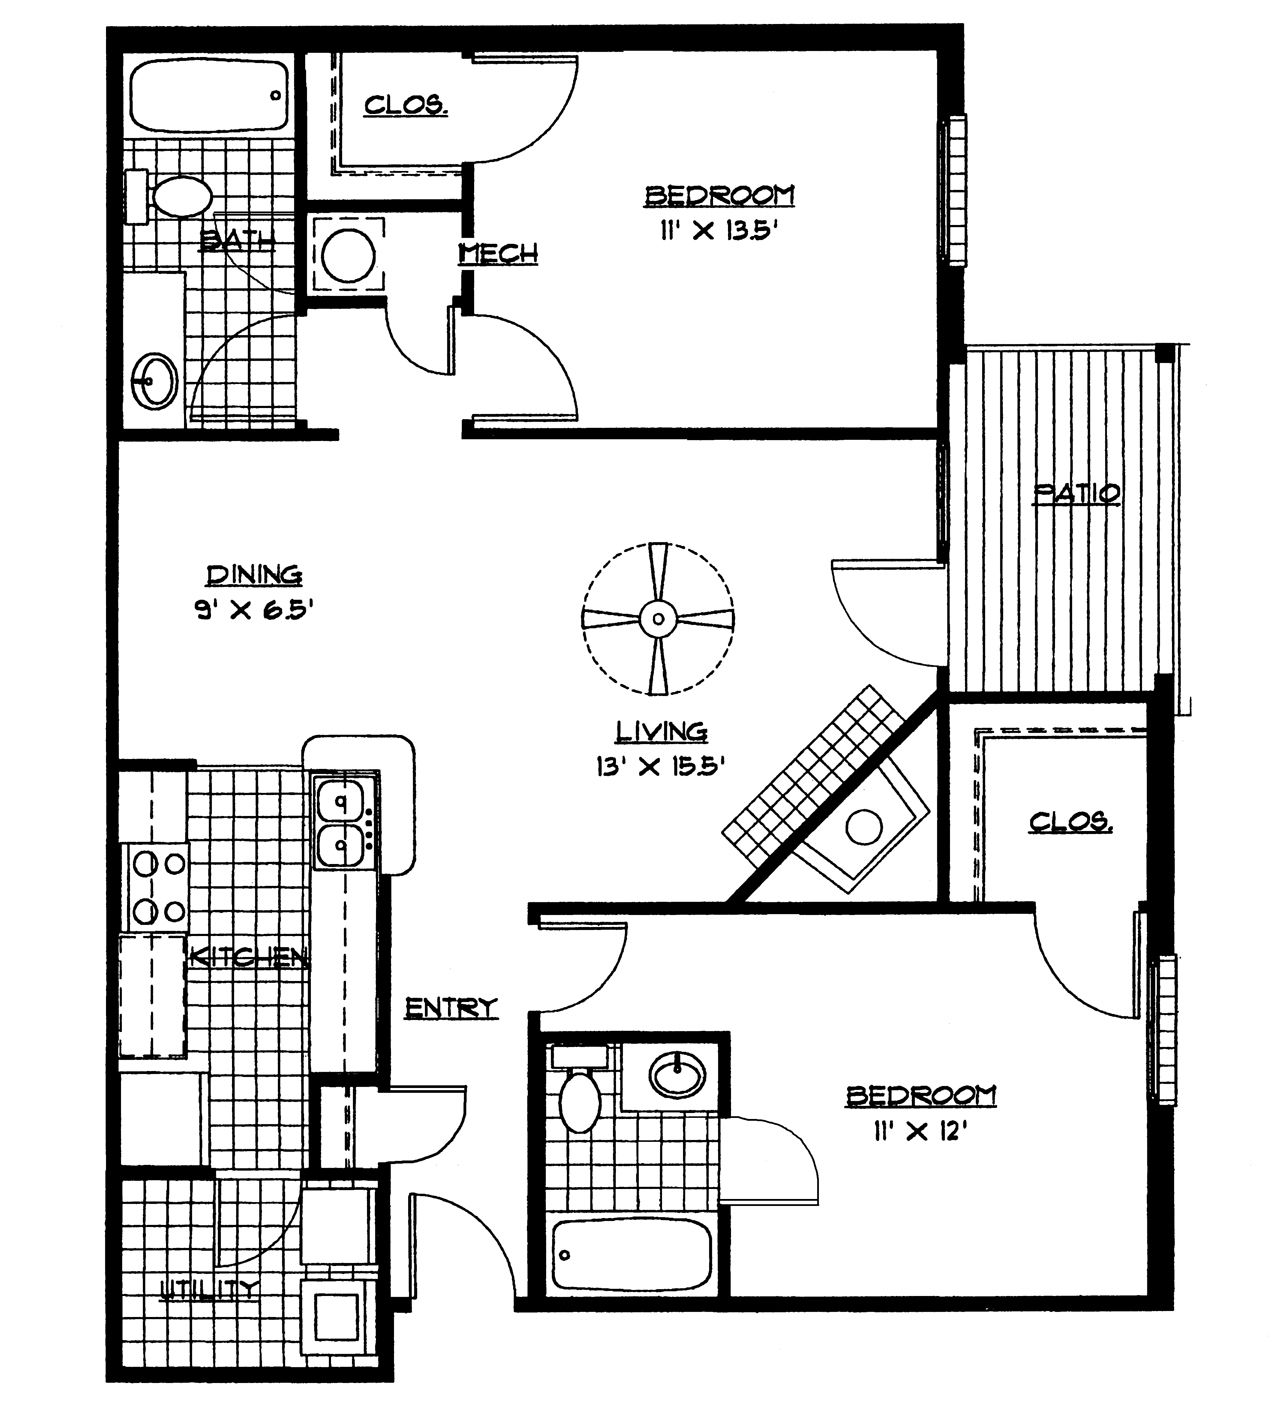 Small house floor plans 2 bedrooms bedroom floor plan for 3 bedroom house floor plans with models pdf